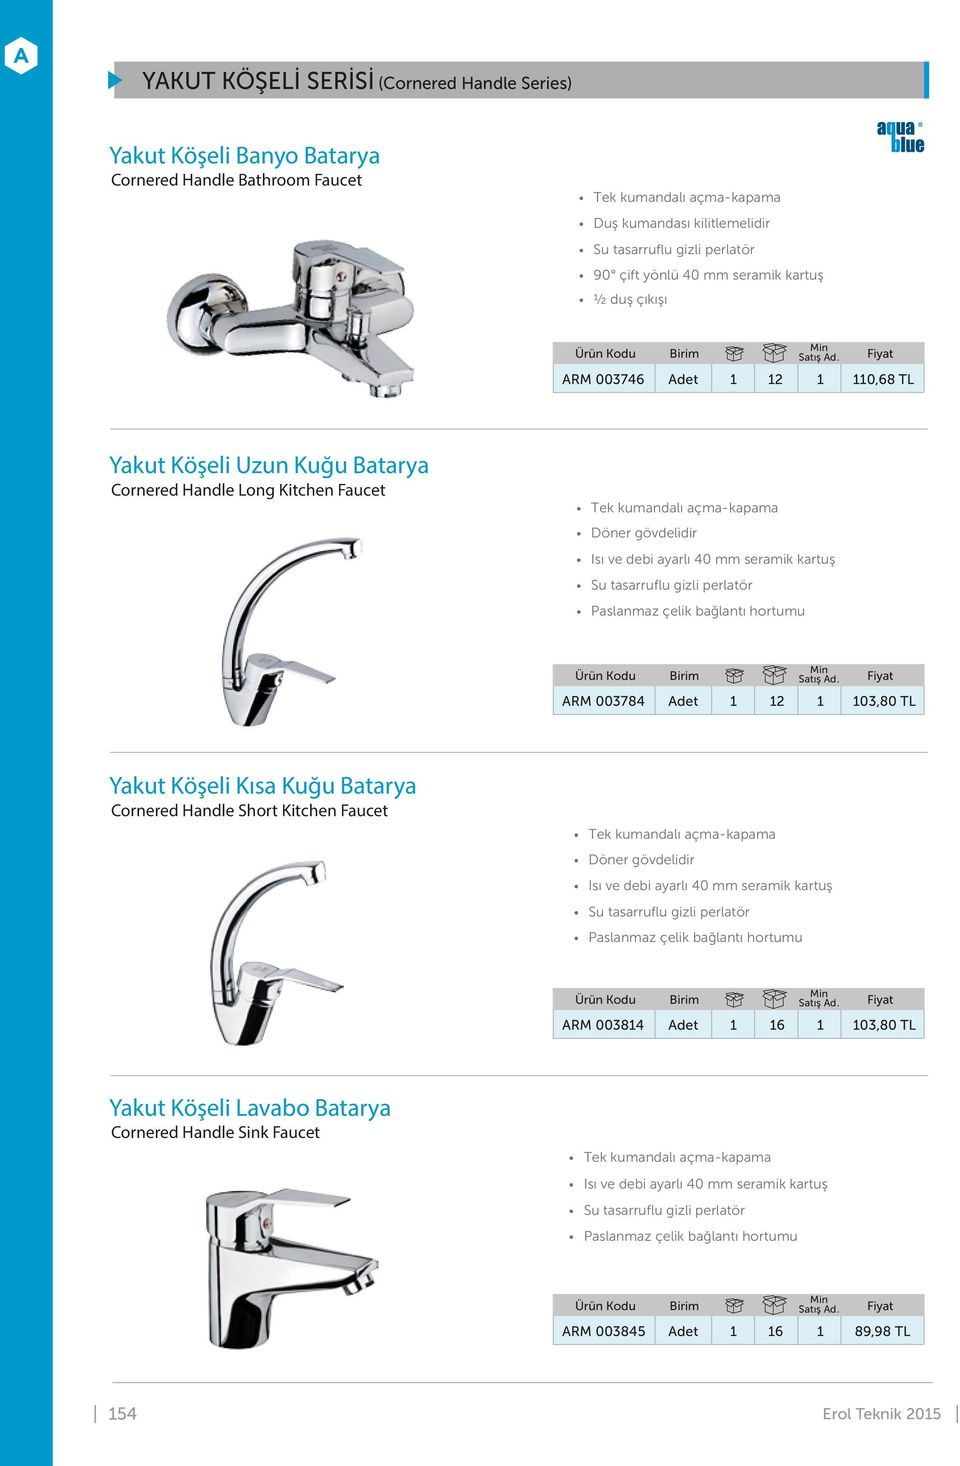 Cornered Handle Long Kitchen Faucet ARM 003784 Adet 1 12 1 103,80 TL Yakut Köşeli Kısa Kuğu Batarya Cornered Handle Short Kitchen